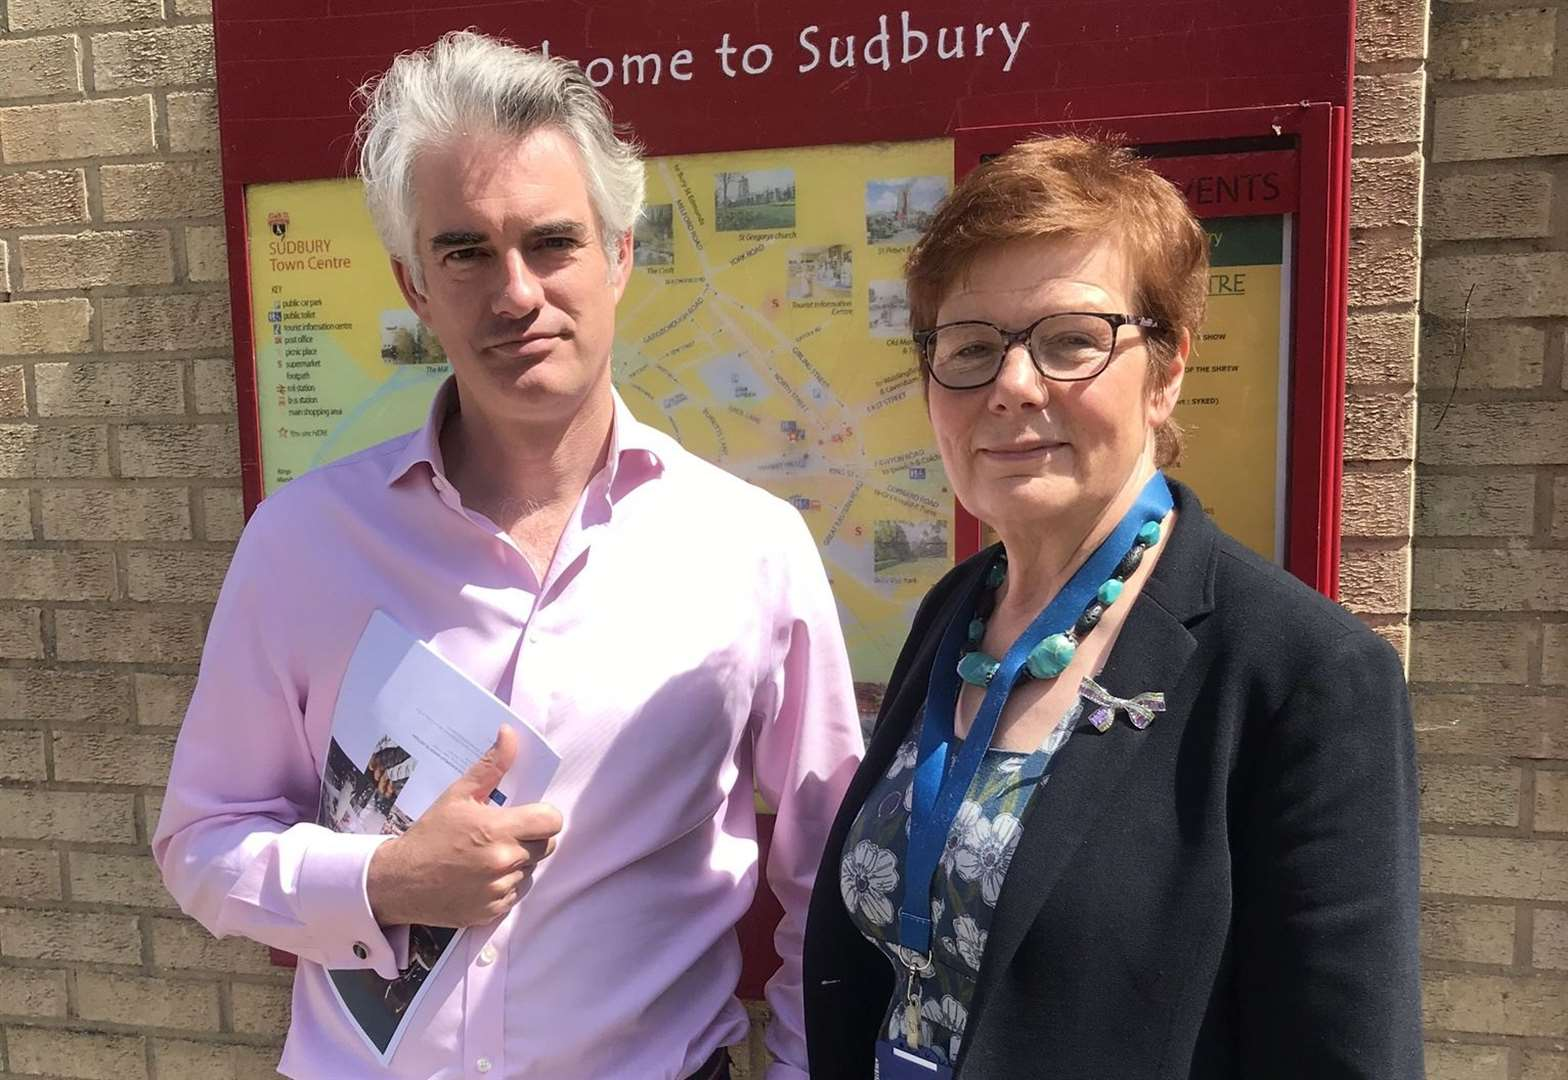 Bus to and from Hadleigh saved after period of uncertainty due to subsidy cuts